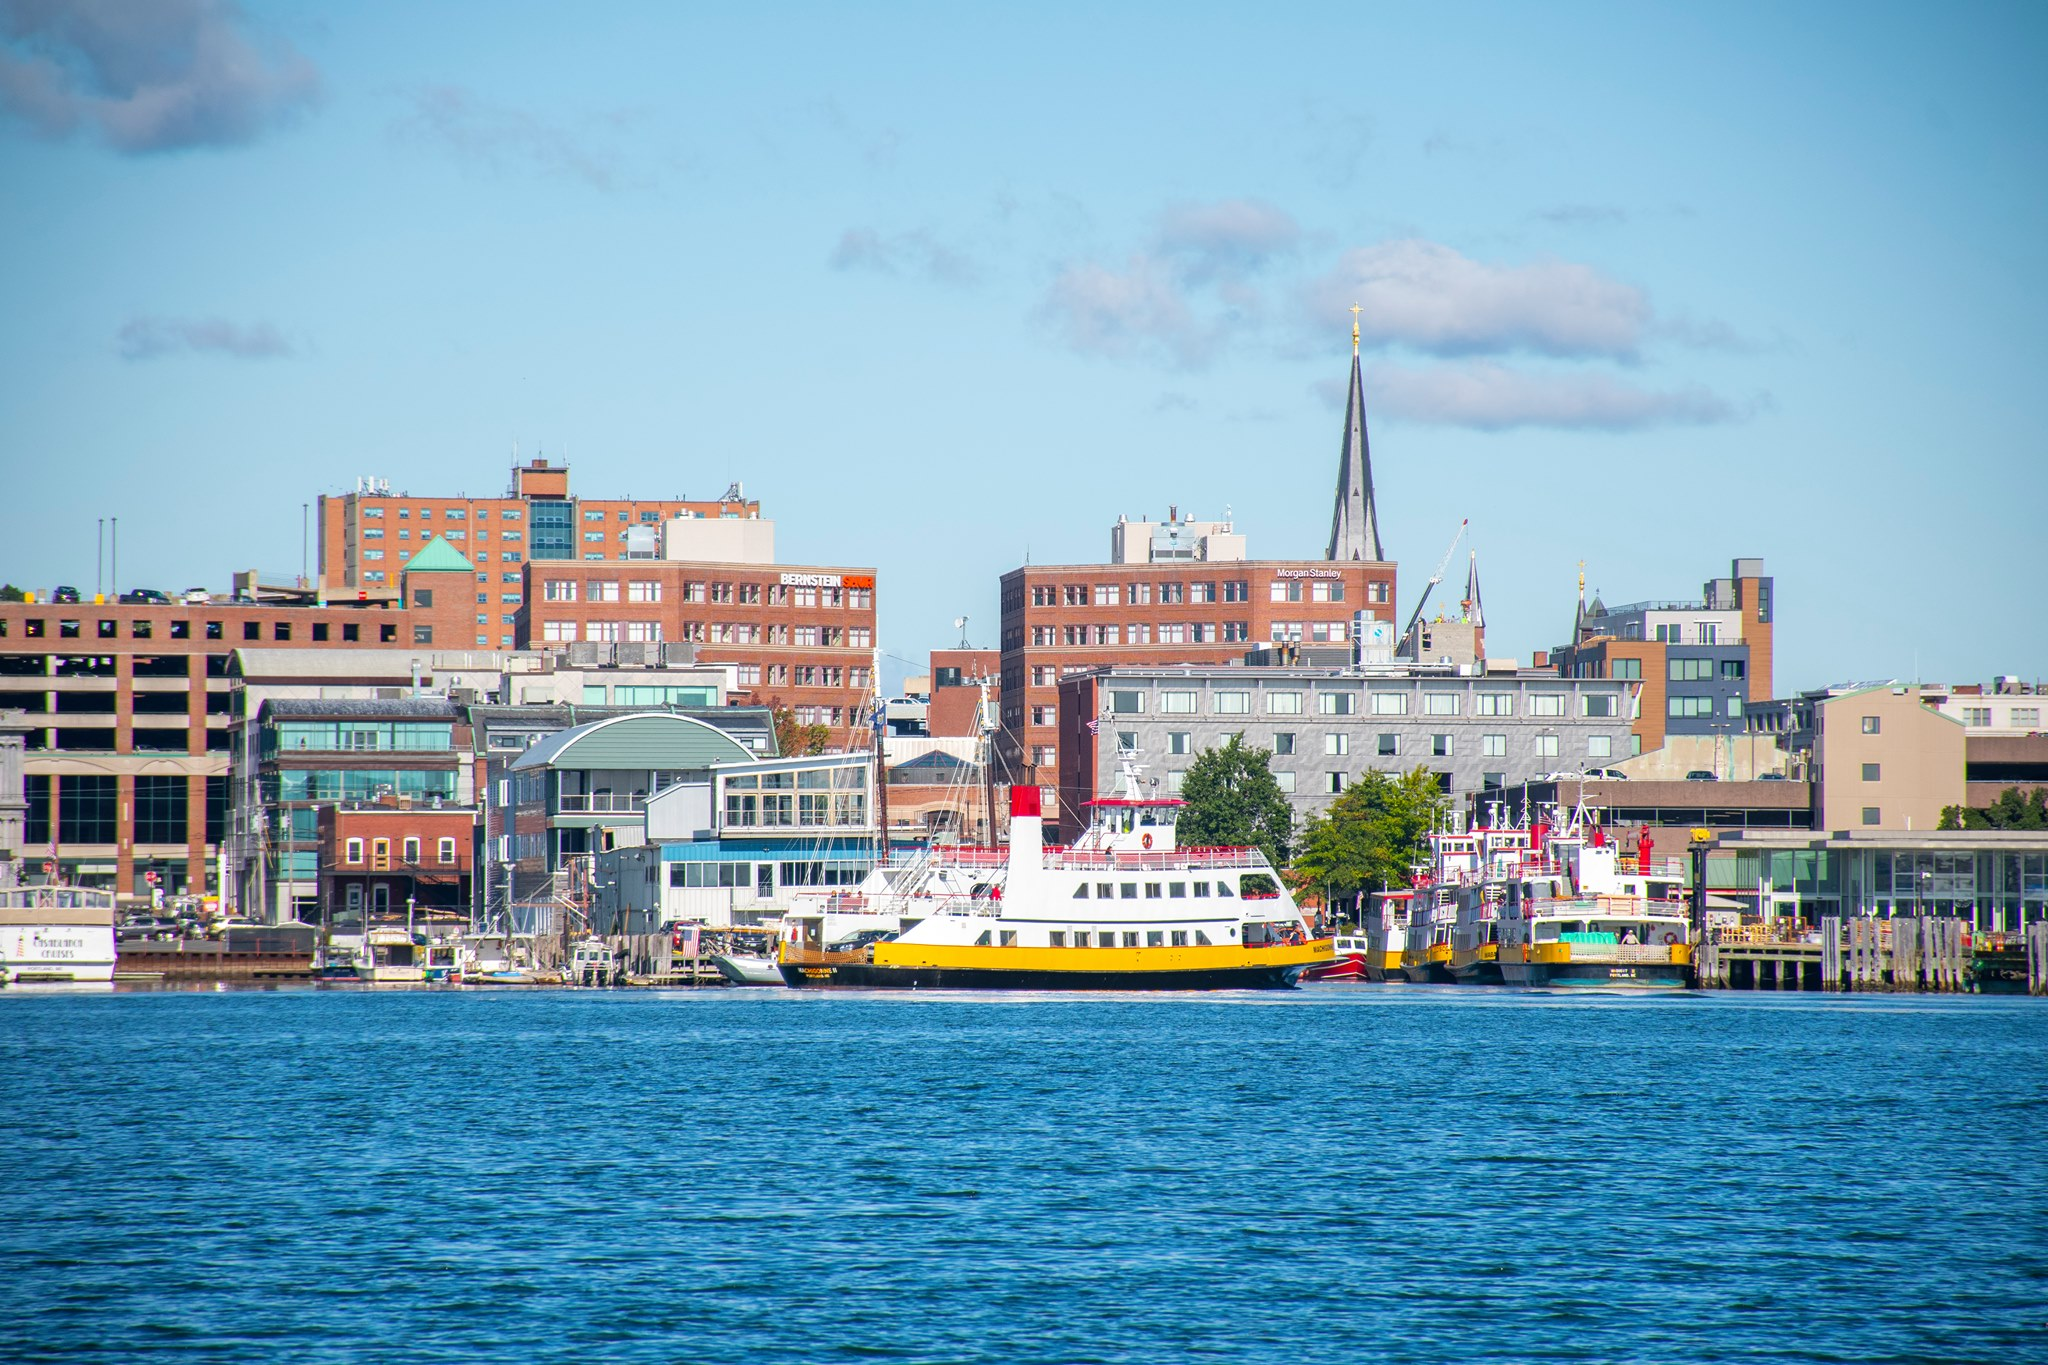 A photo of the Old Port skyline in Portland